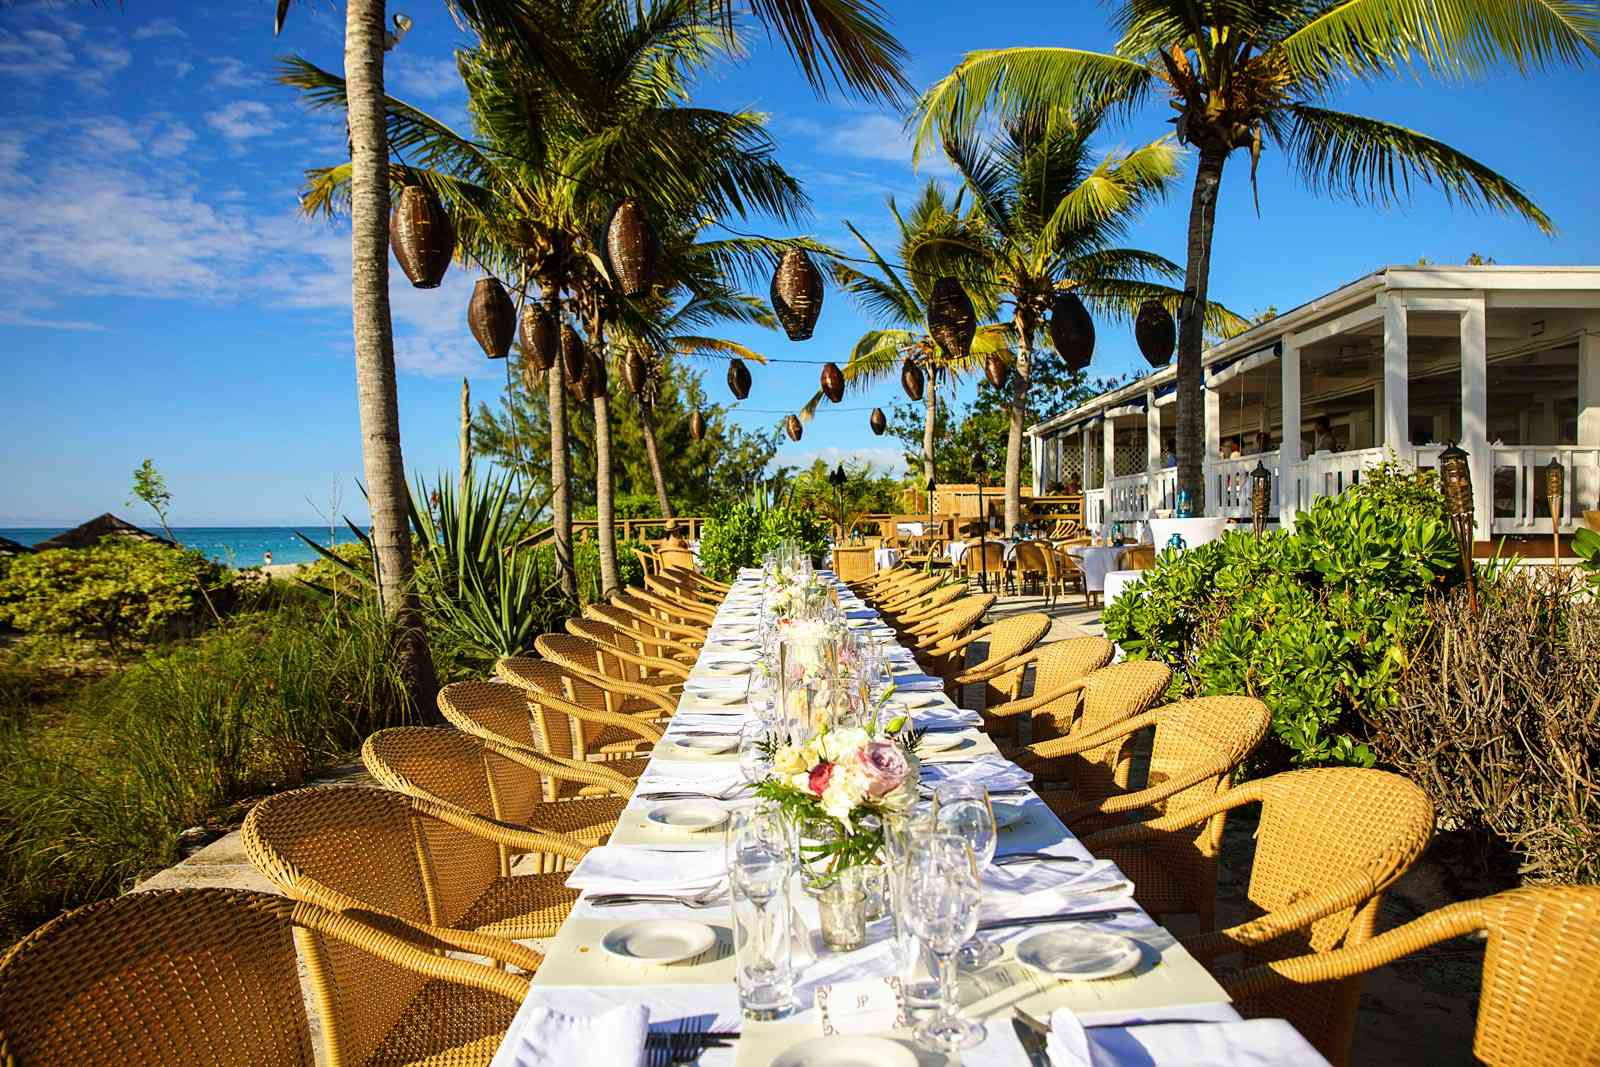 long outdoor communal table with wicker chairs and palm trees in the background